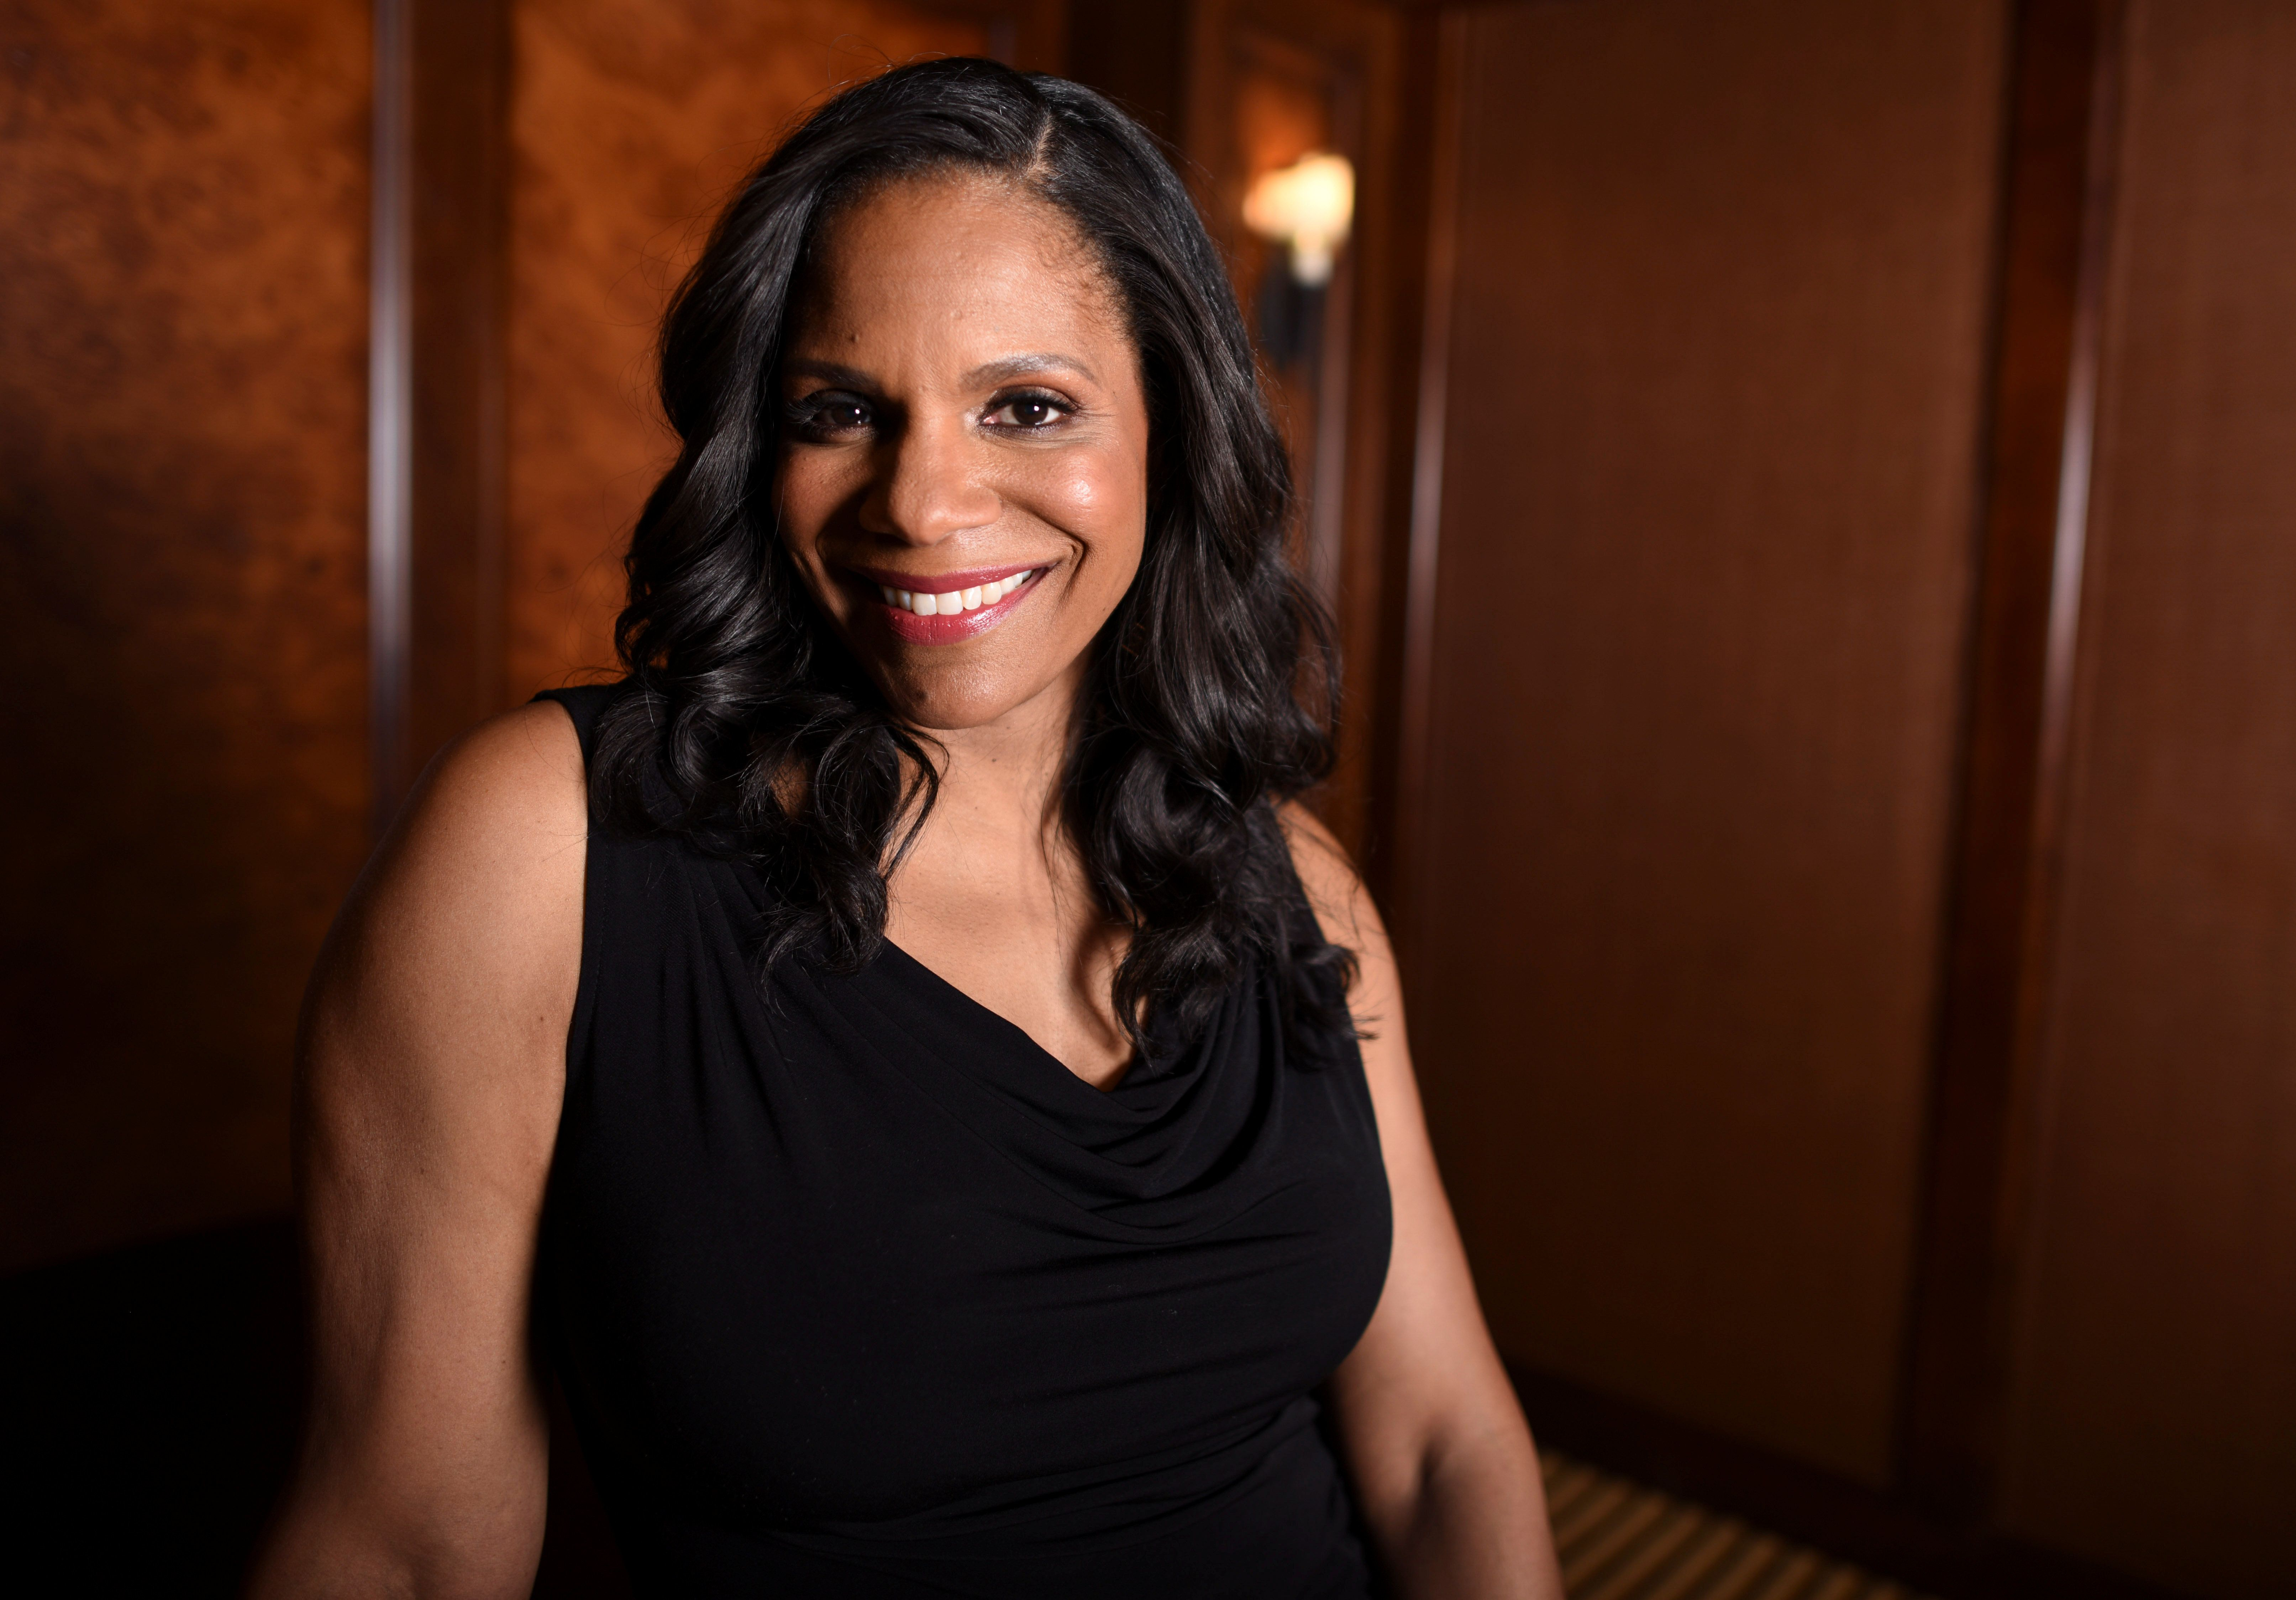 """Beauty and the Beast"" cast member Audra McDonald is photographed at the Montage hotel in Beverly Hills, California, U.S. March 5, 2017. REUTERS/Phil McCarten"